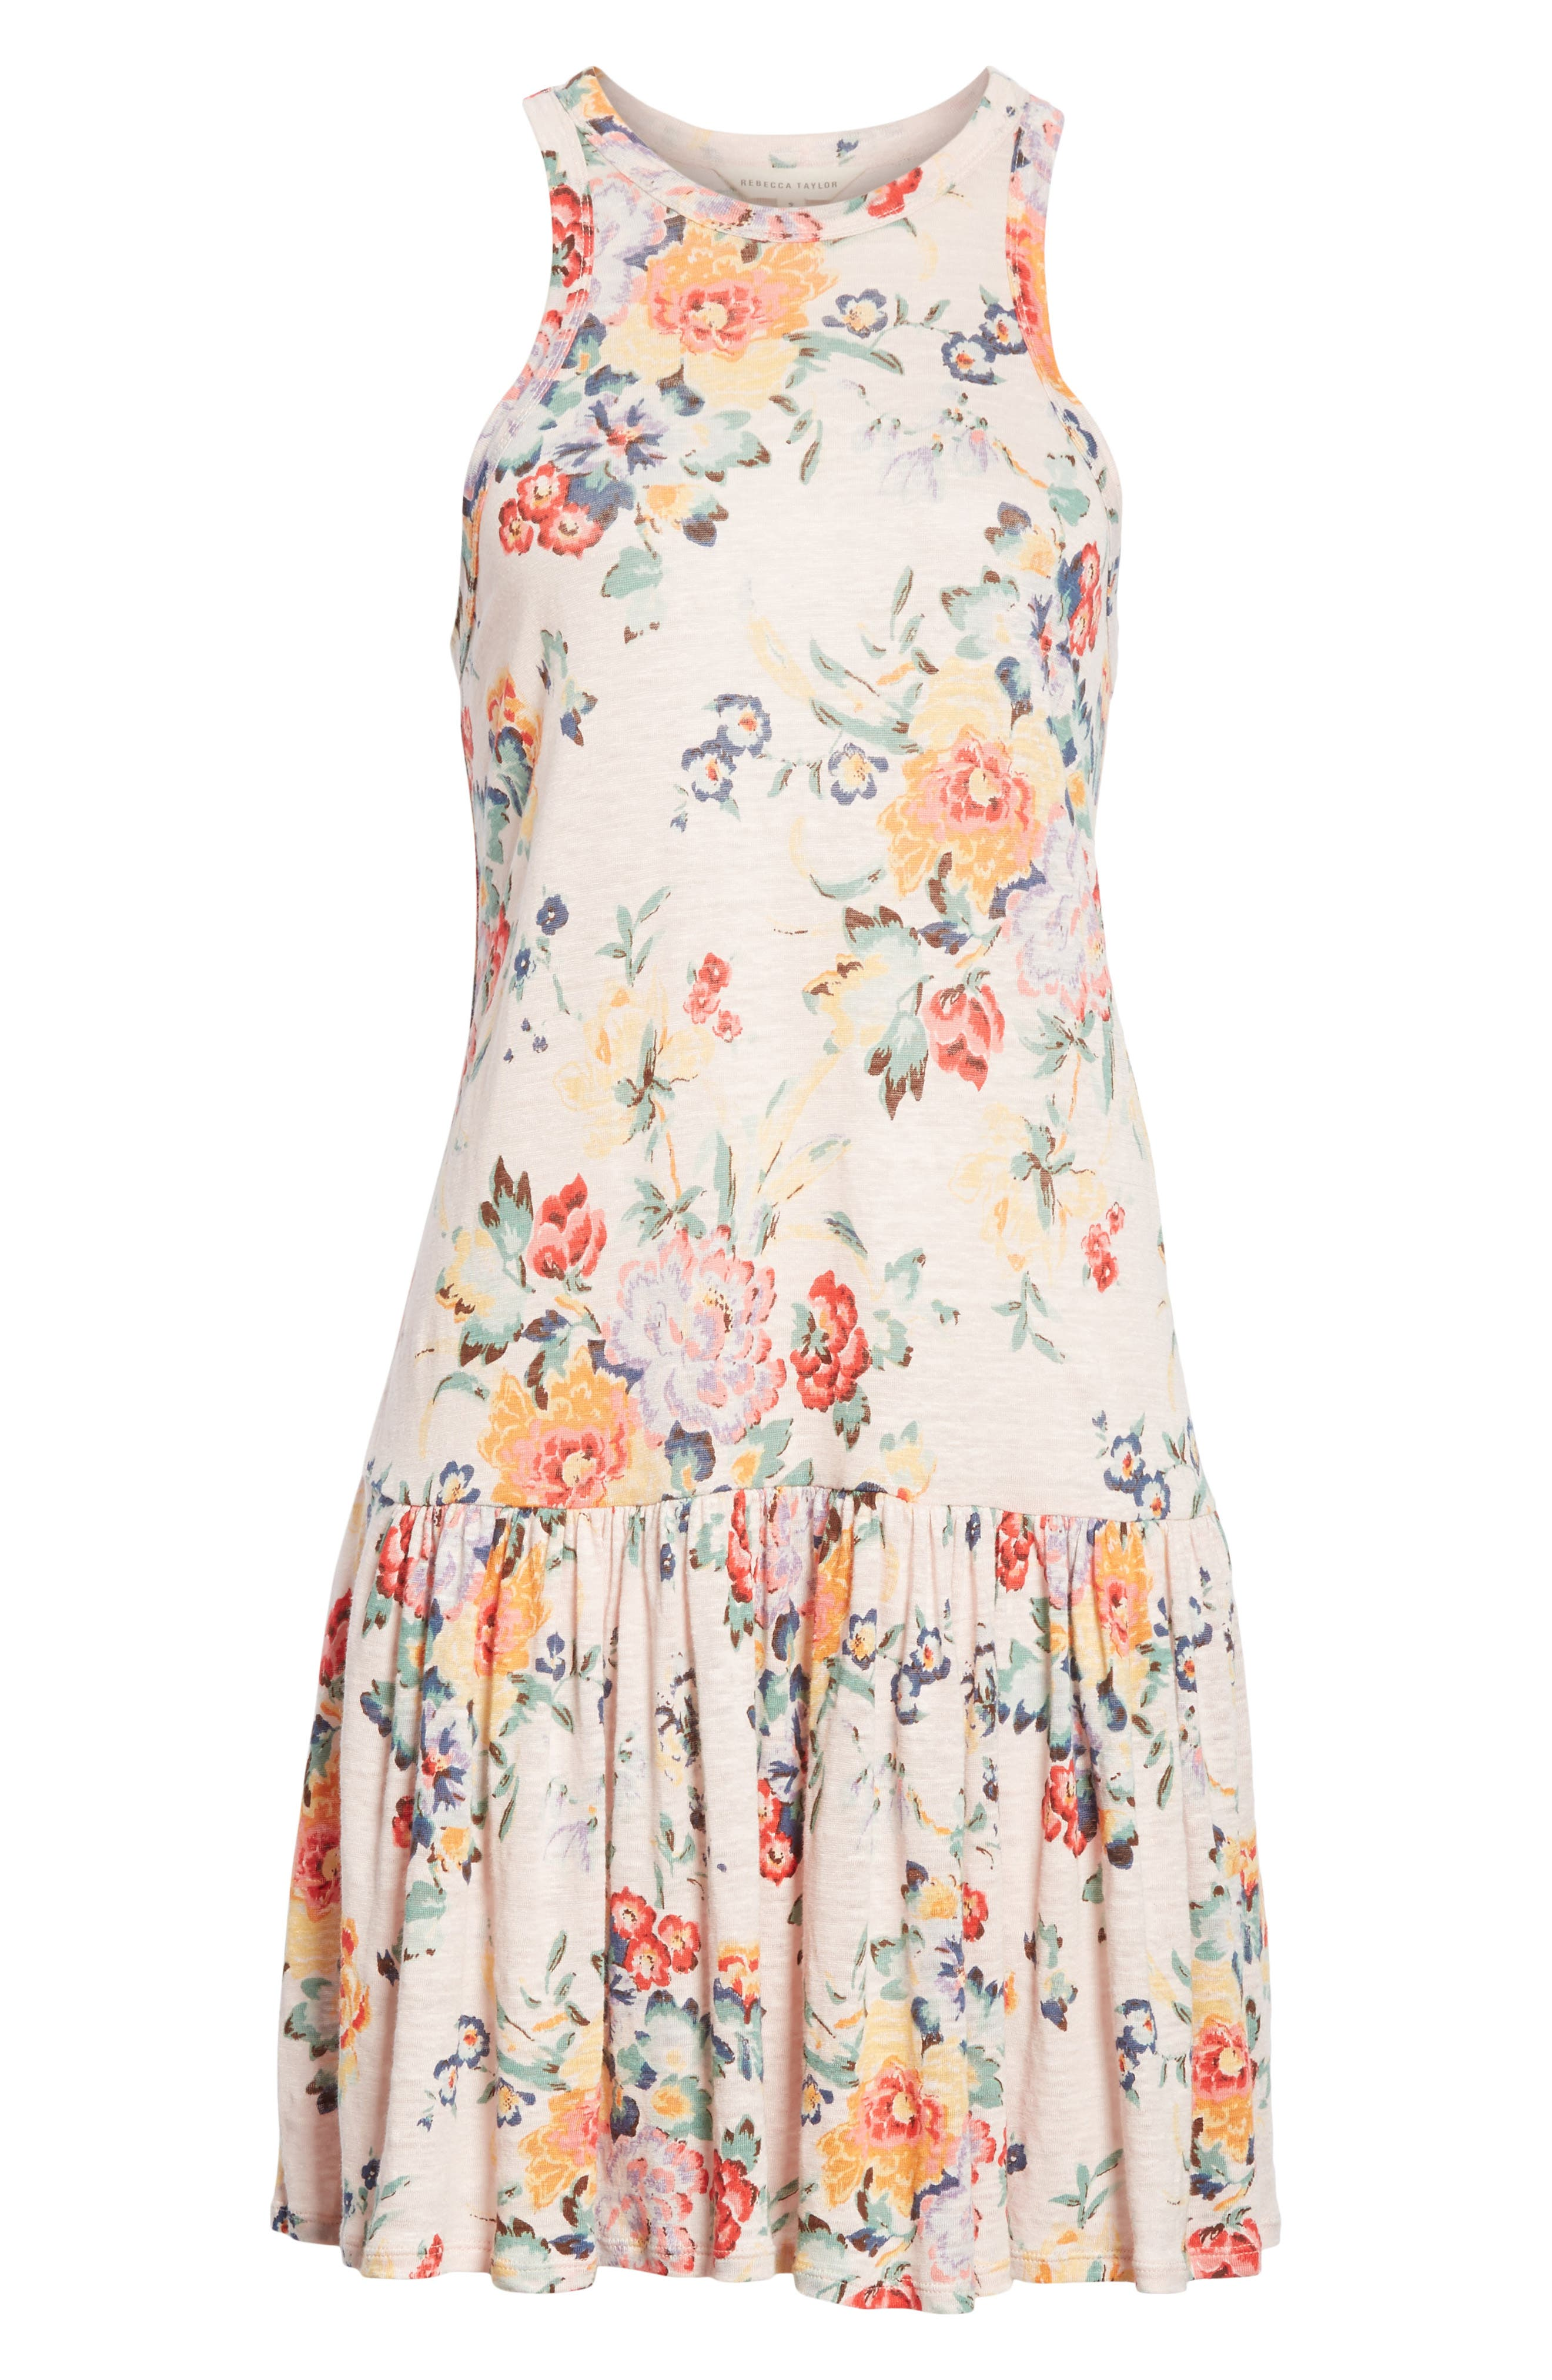 Marlena Floral Jersey Dress,                             Alternate thumbnail 6, color,                             Dusty Rose Combo